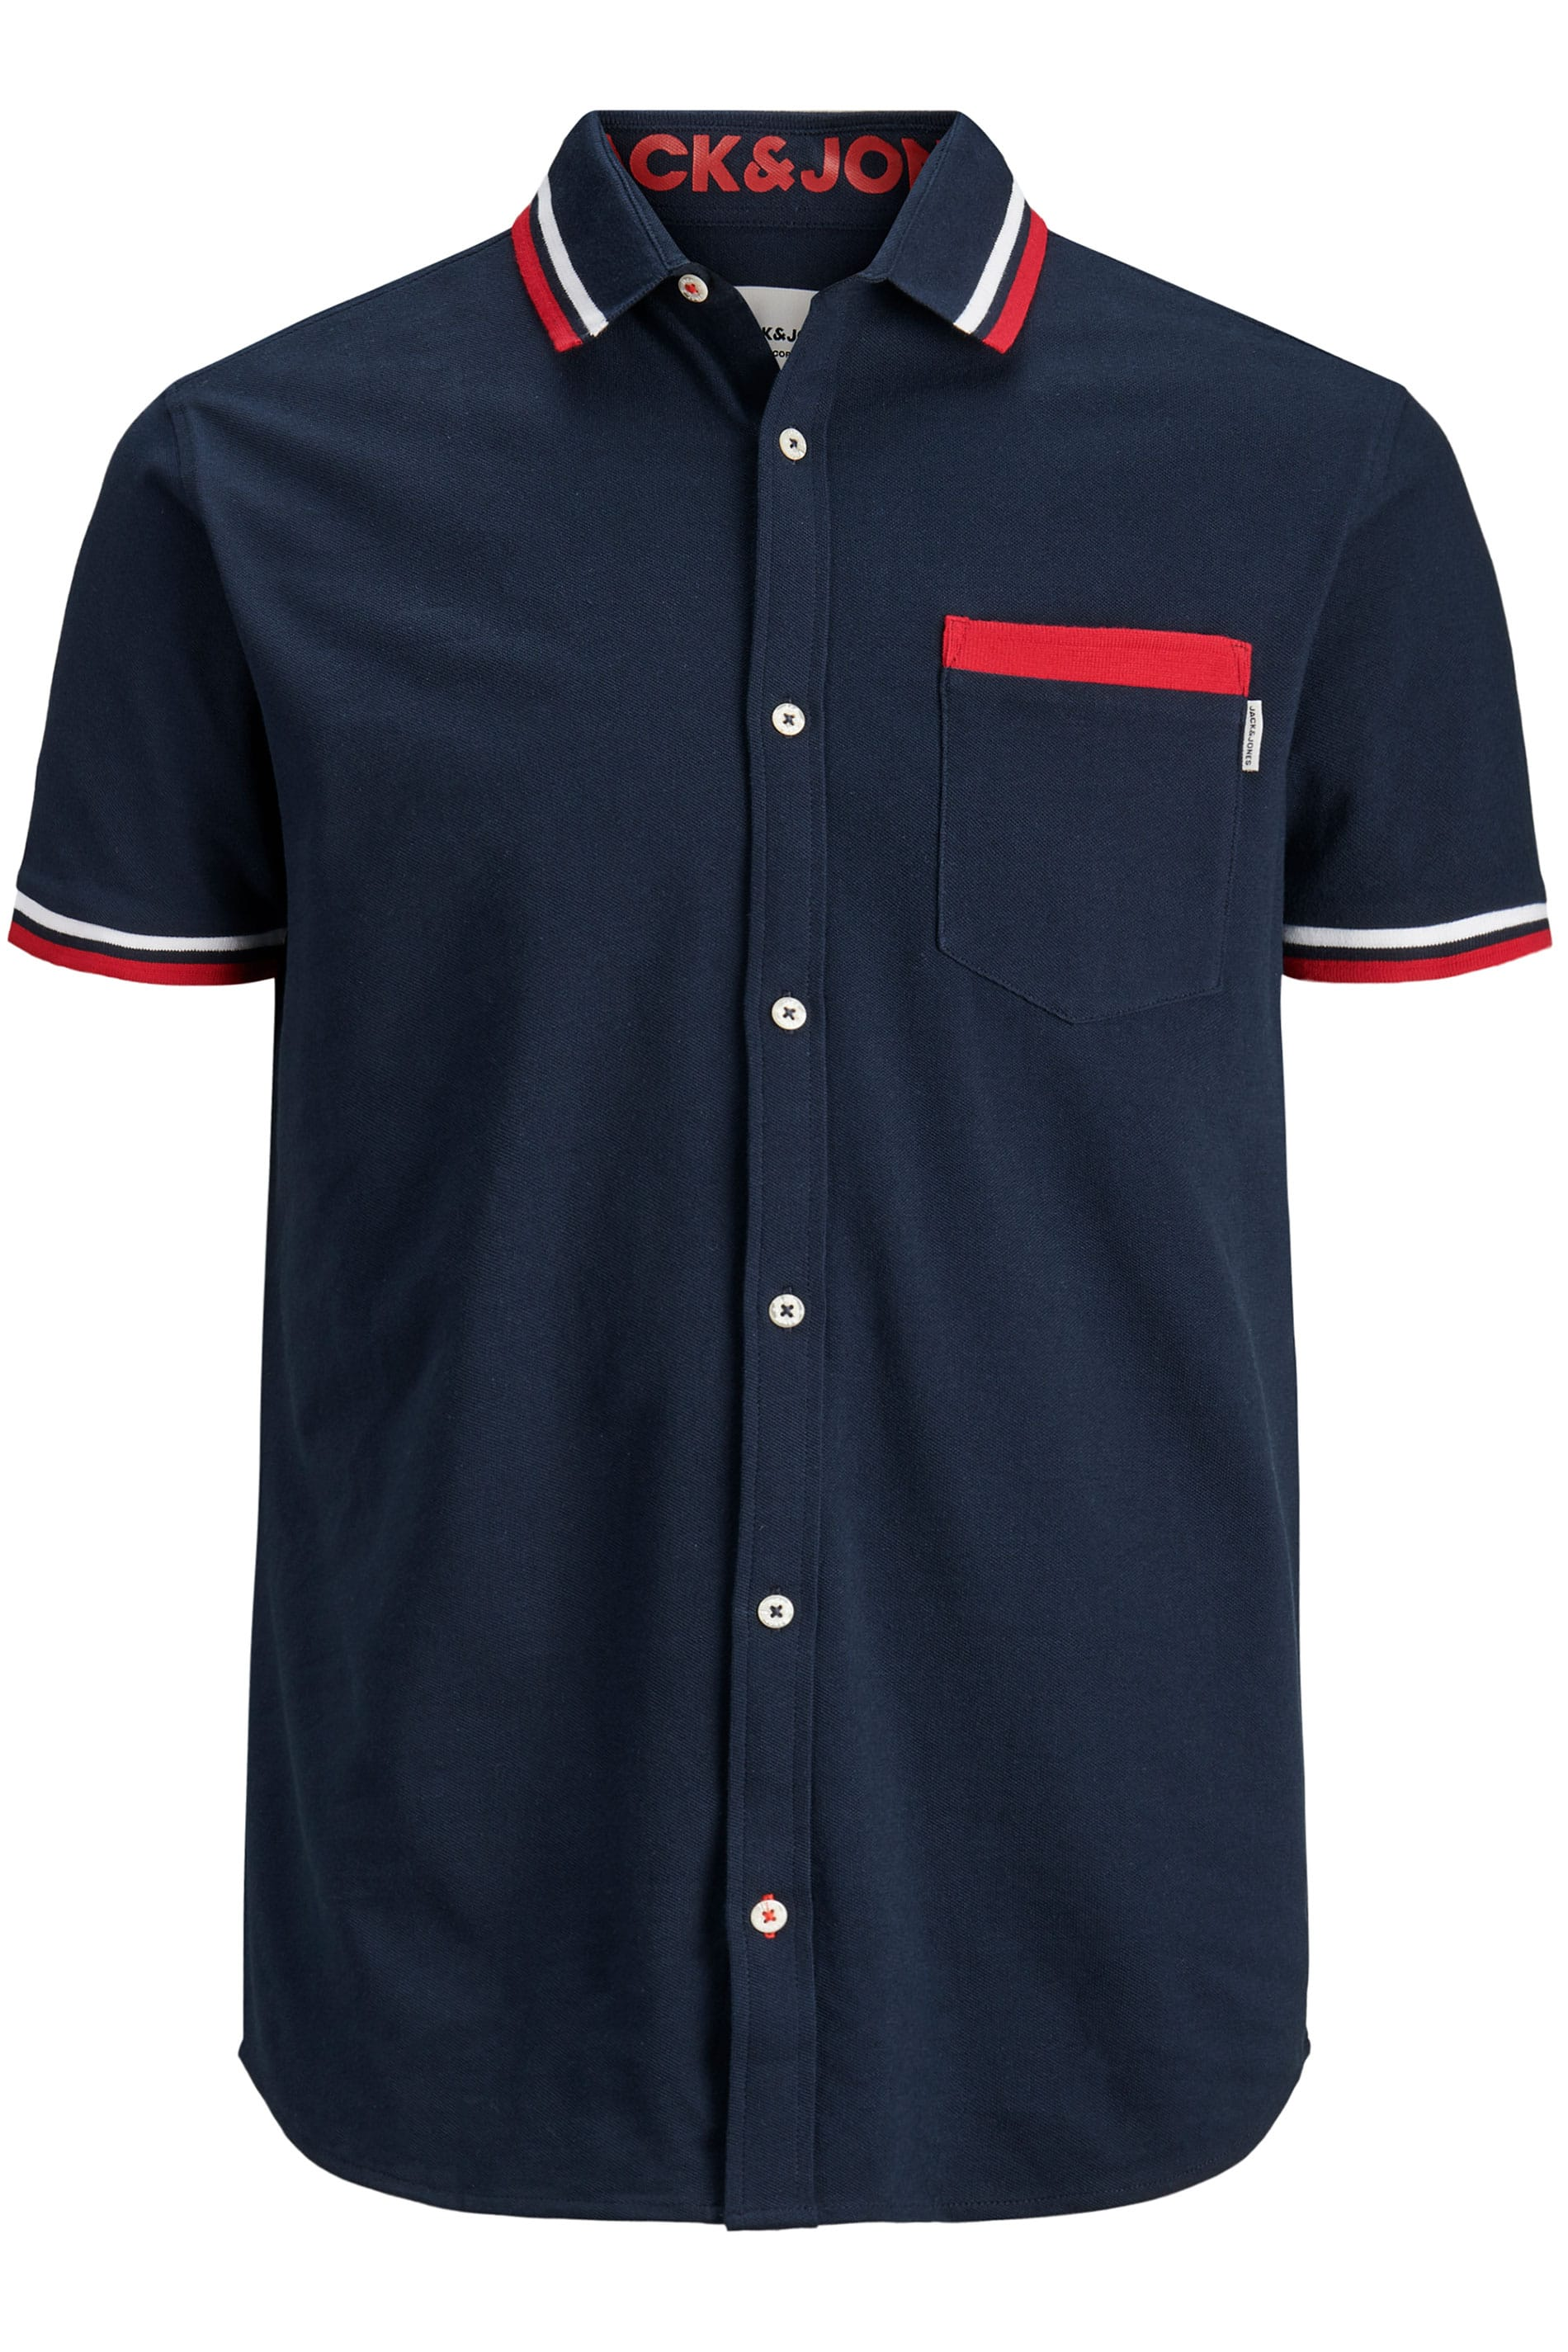 JACK & JONES Navy Cotton Pique Short Sleeved Shirt